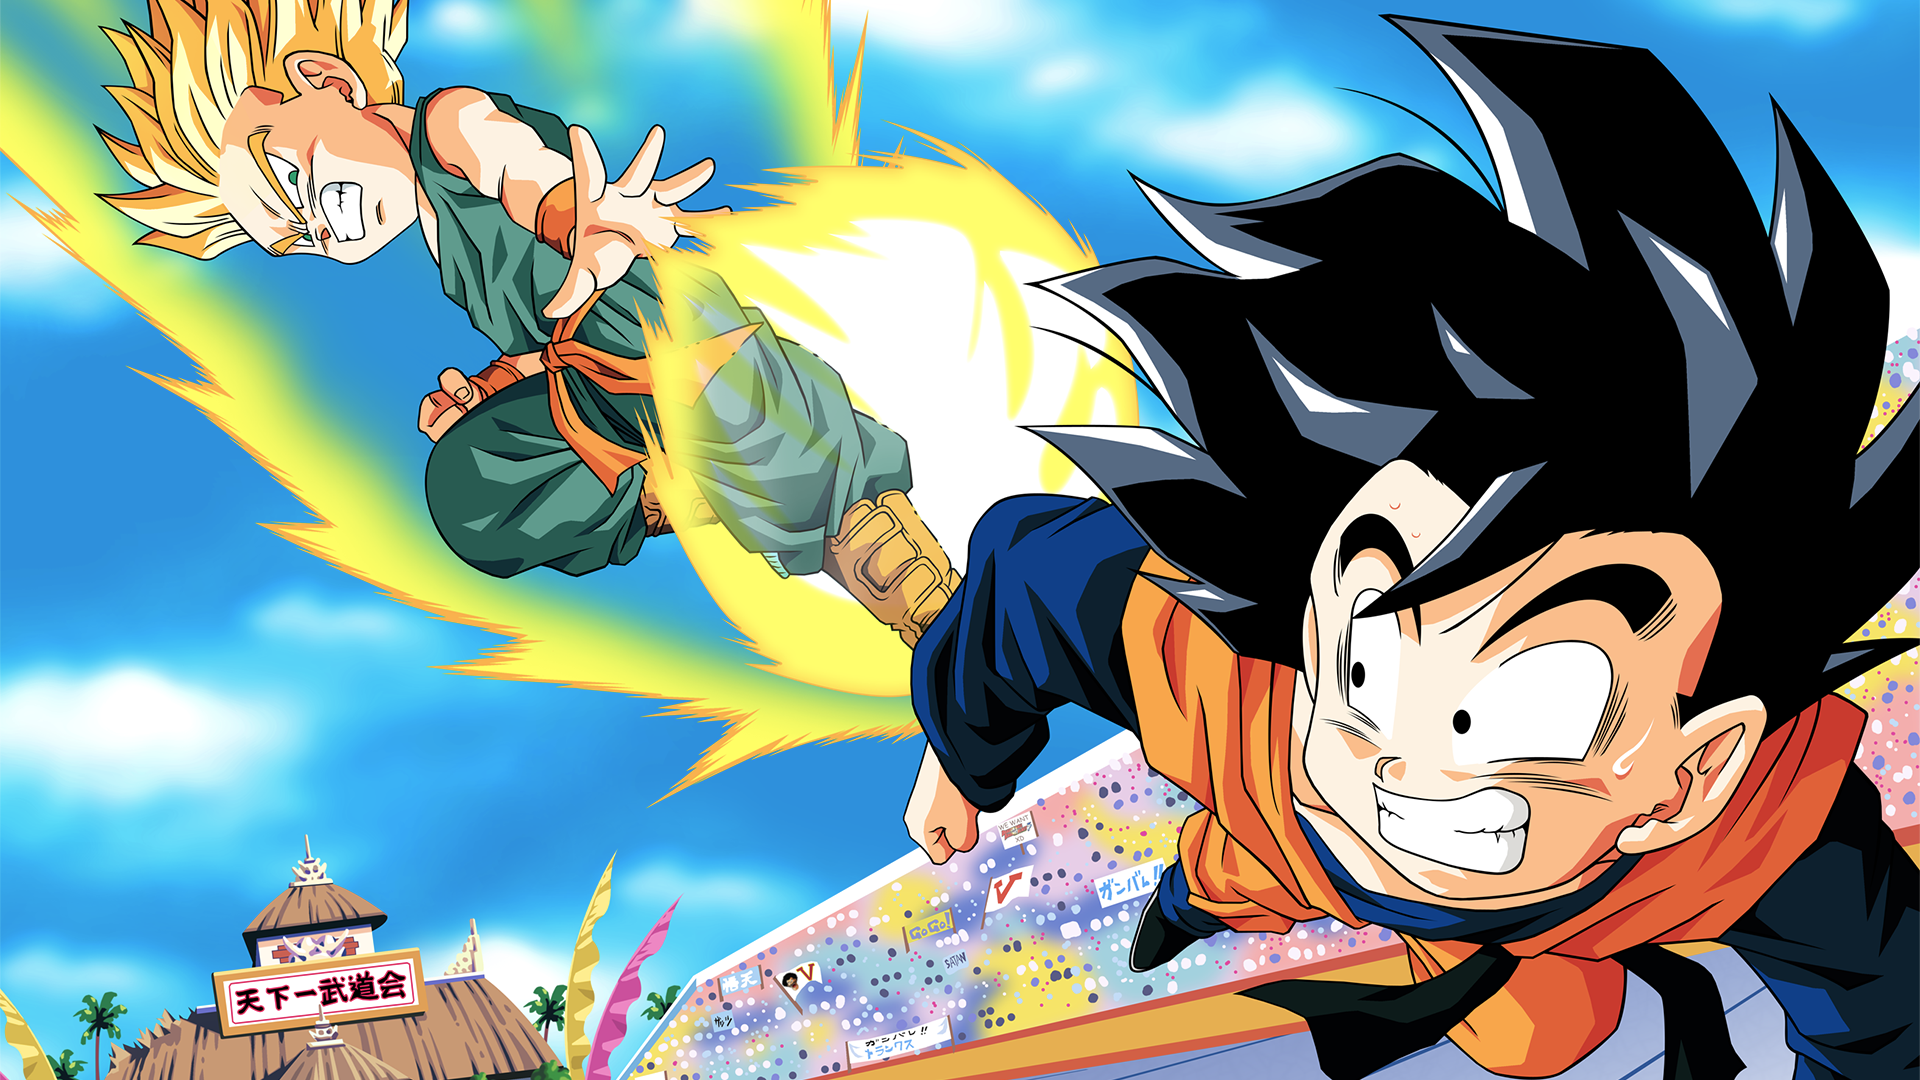 115 Trunks Dragon Ball Fondos De Pantalla Hd Fondos De